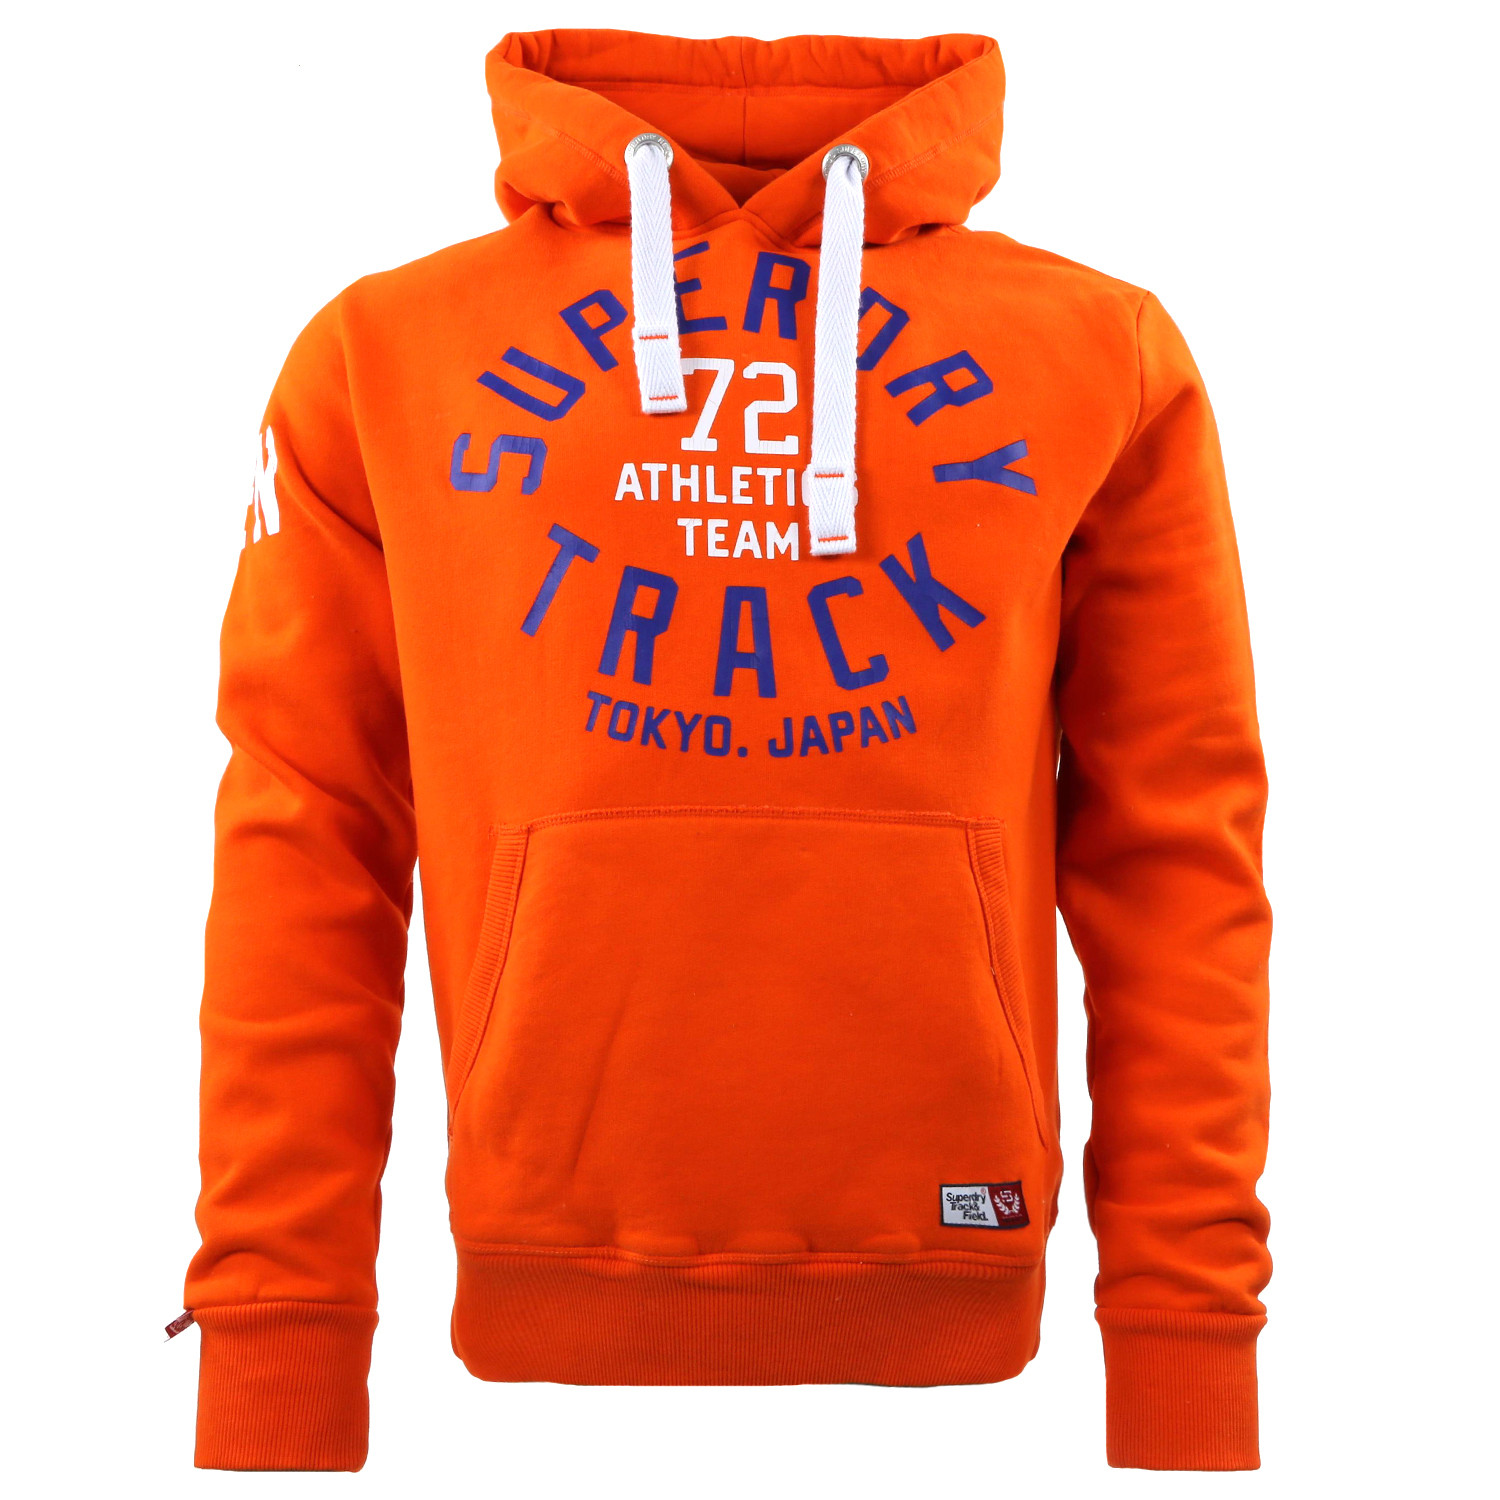 Trackster Homme Capuche Sweat cher ORANGE SUPERDRY pas YEH9W2ID